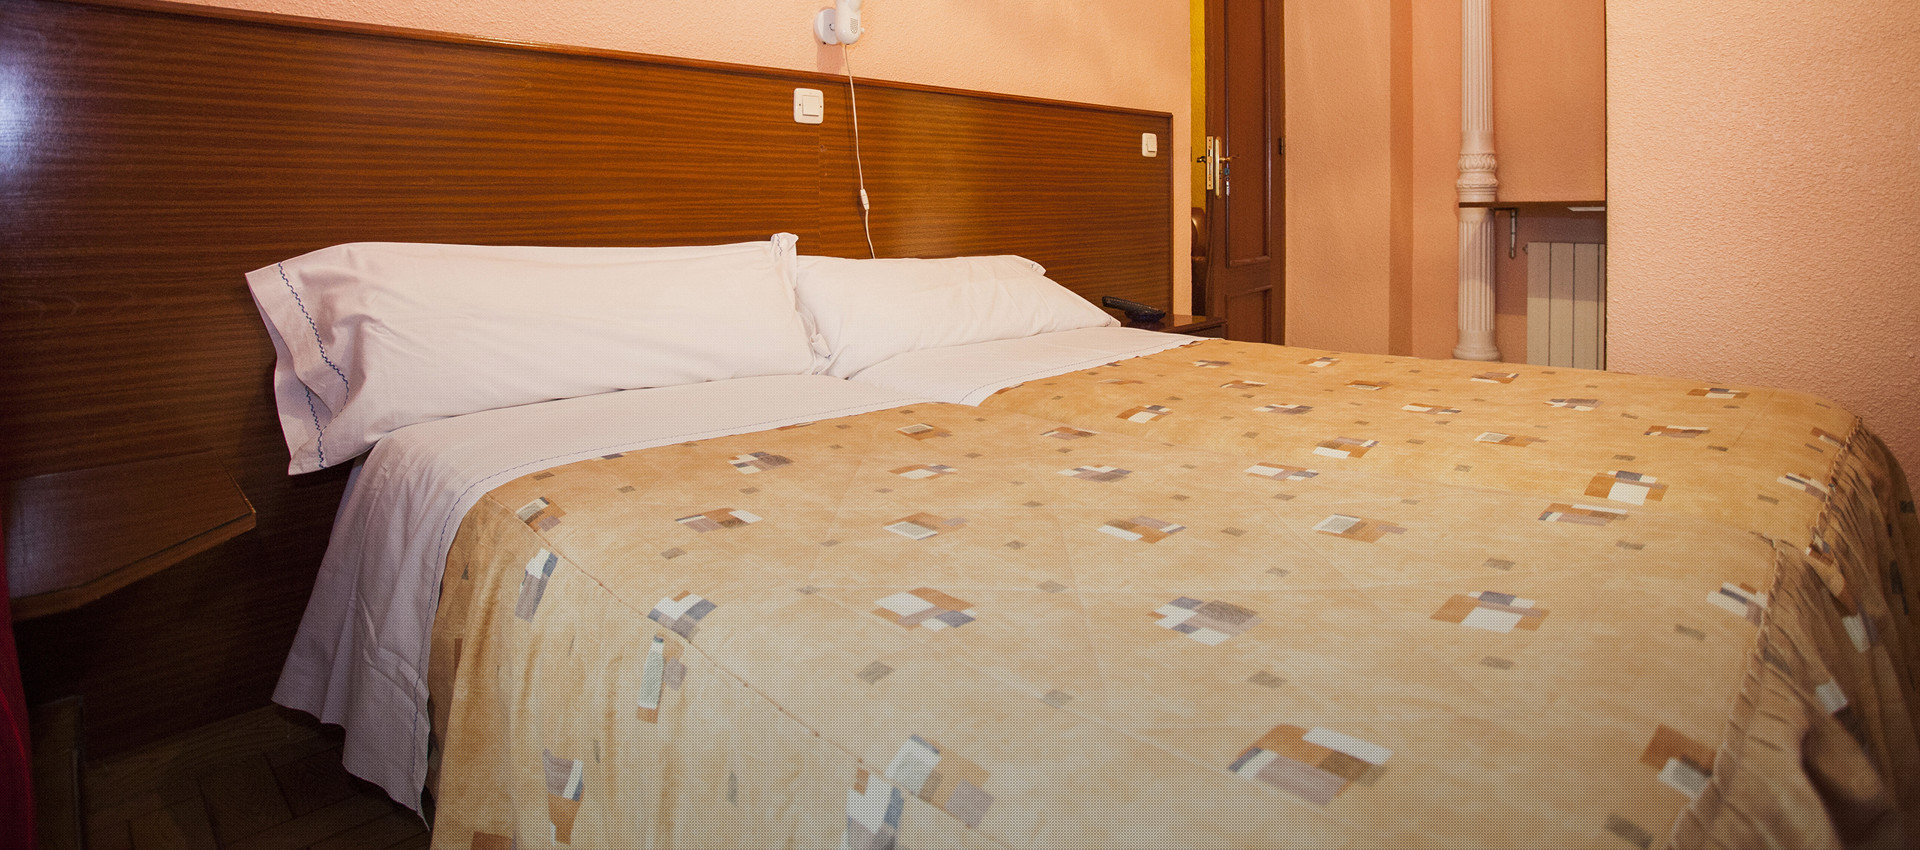 Hostel economico a Madrid